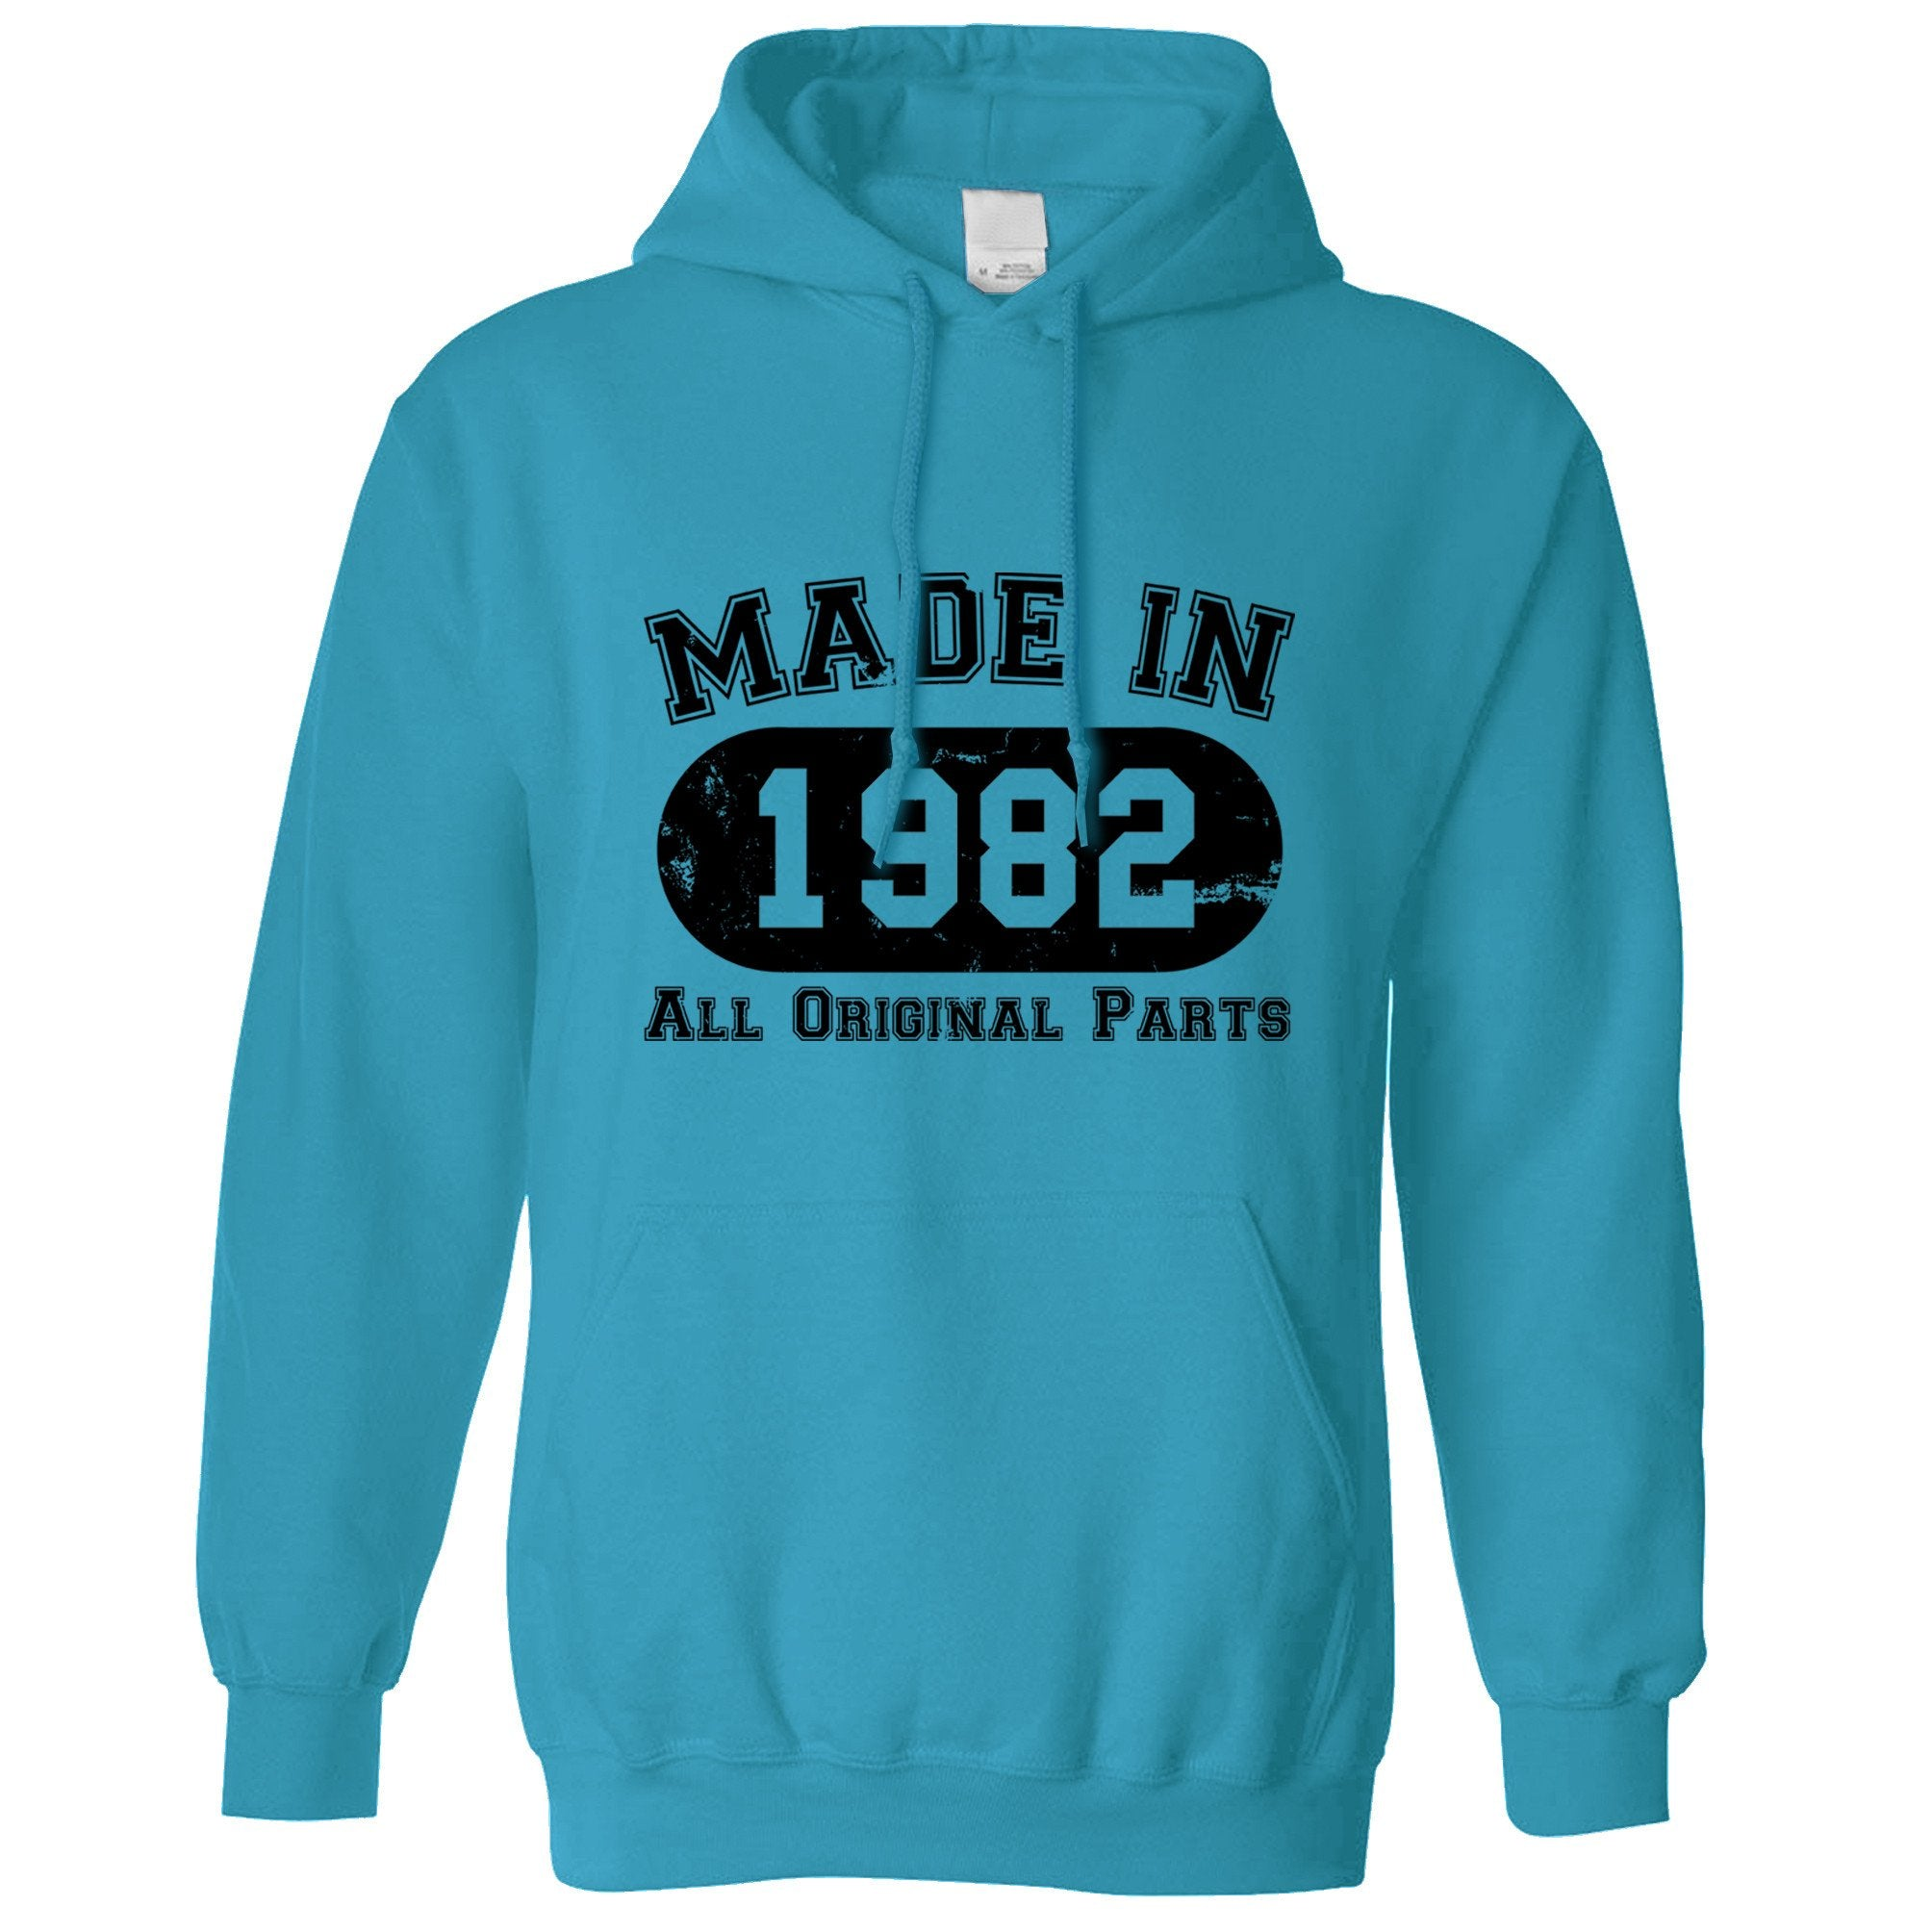 Made in 1982 All Original Parts Hoodie [Distressed]